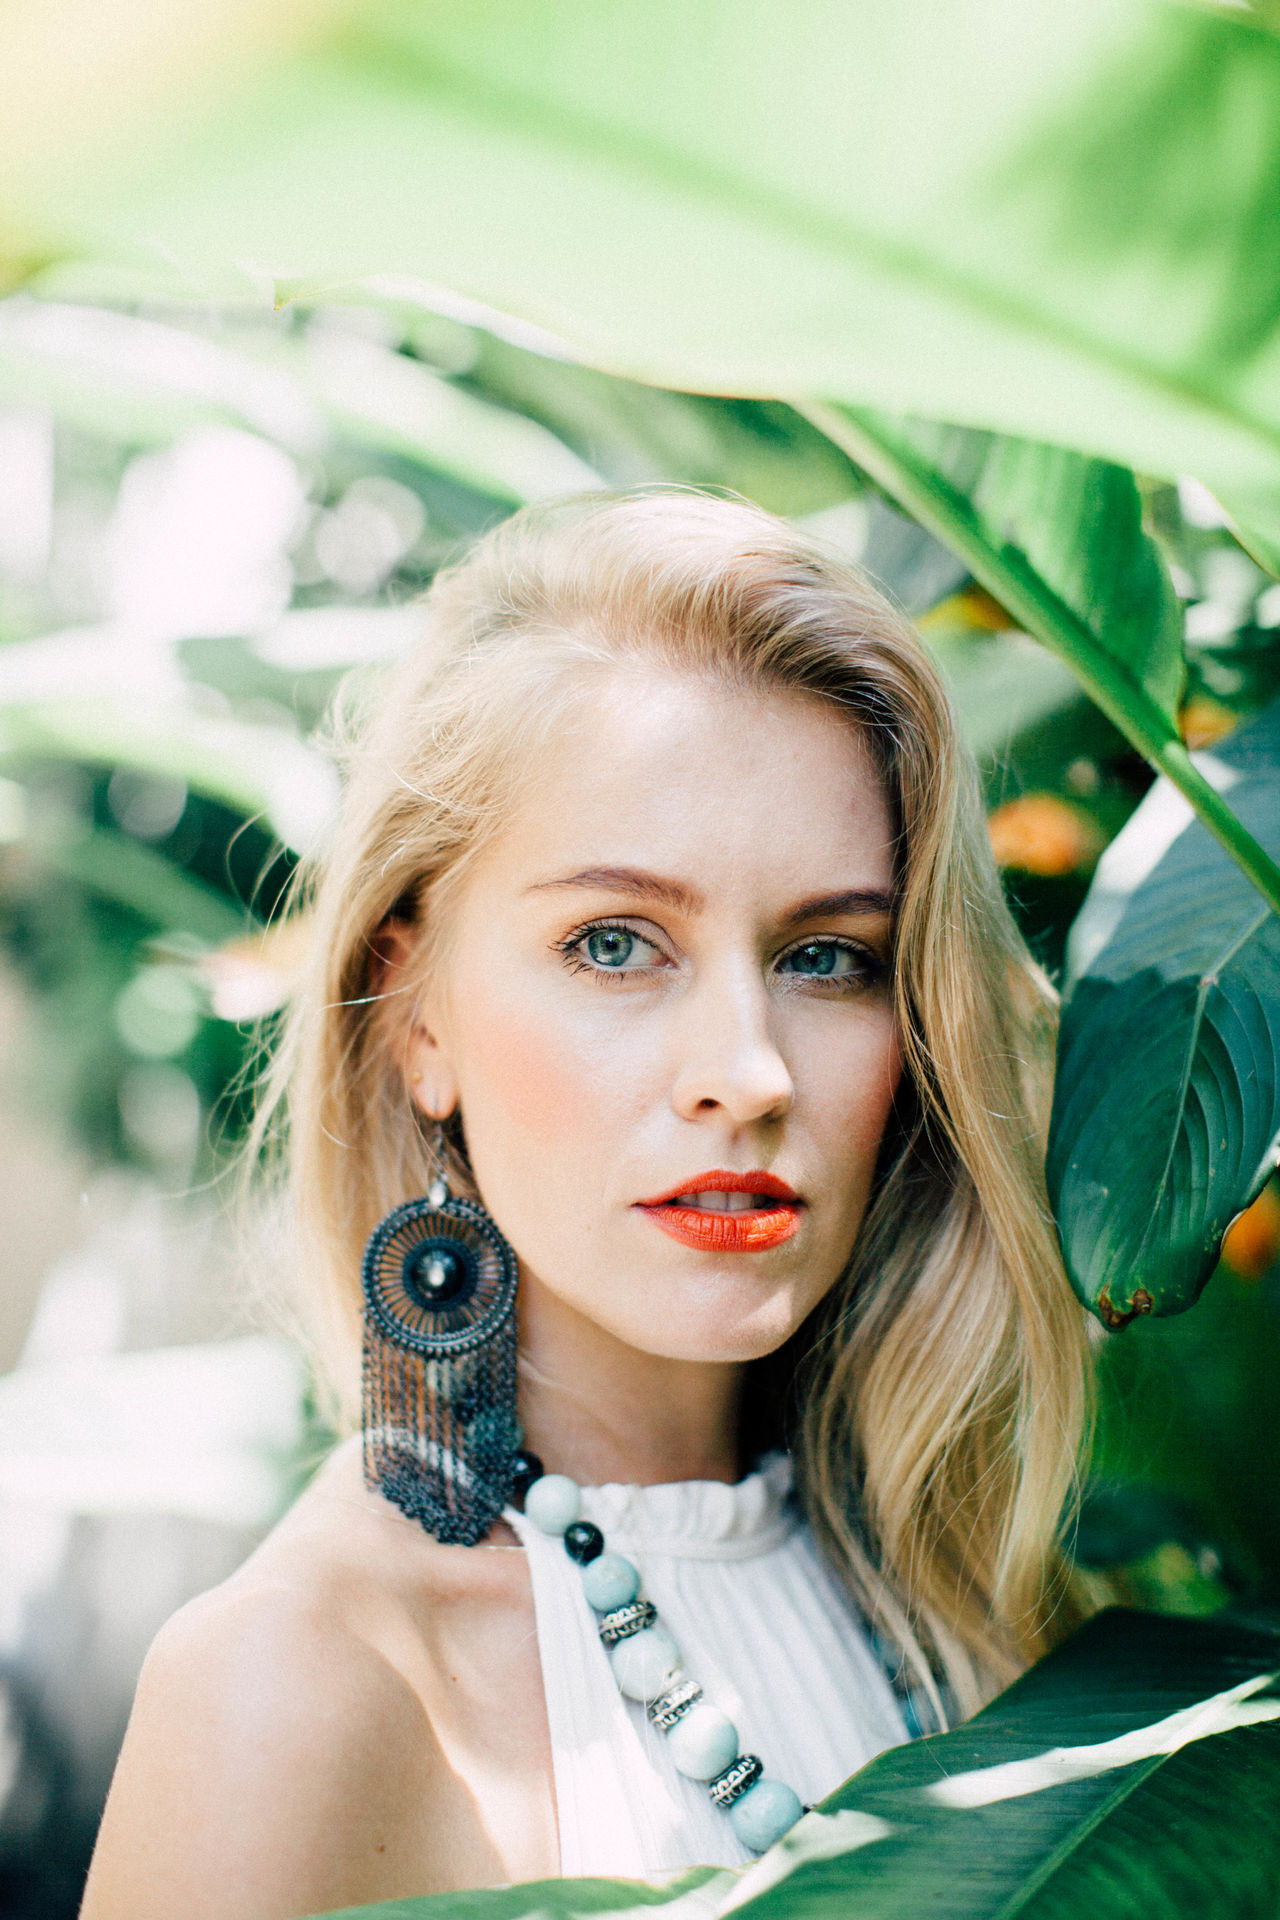 Beautiful People Beautiful Woman Beauty Blond Hair Close-up Day Fashion Fashion Model Glamour Headshot Human Lips Leaf Lifestyles Lipstick Looking At Camera One Person One Woman Only One Young Woman Only Outdoors Portrait Real People Red Lipstick Women Young Adult Young Women